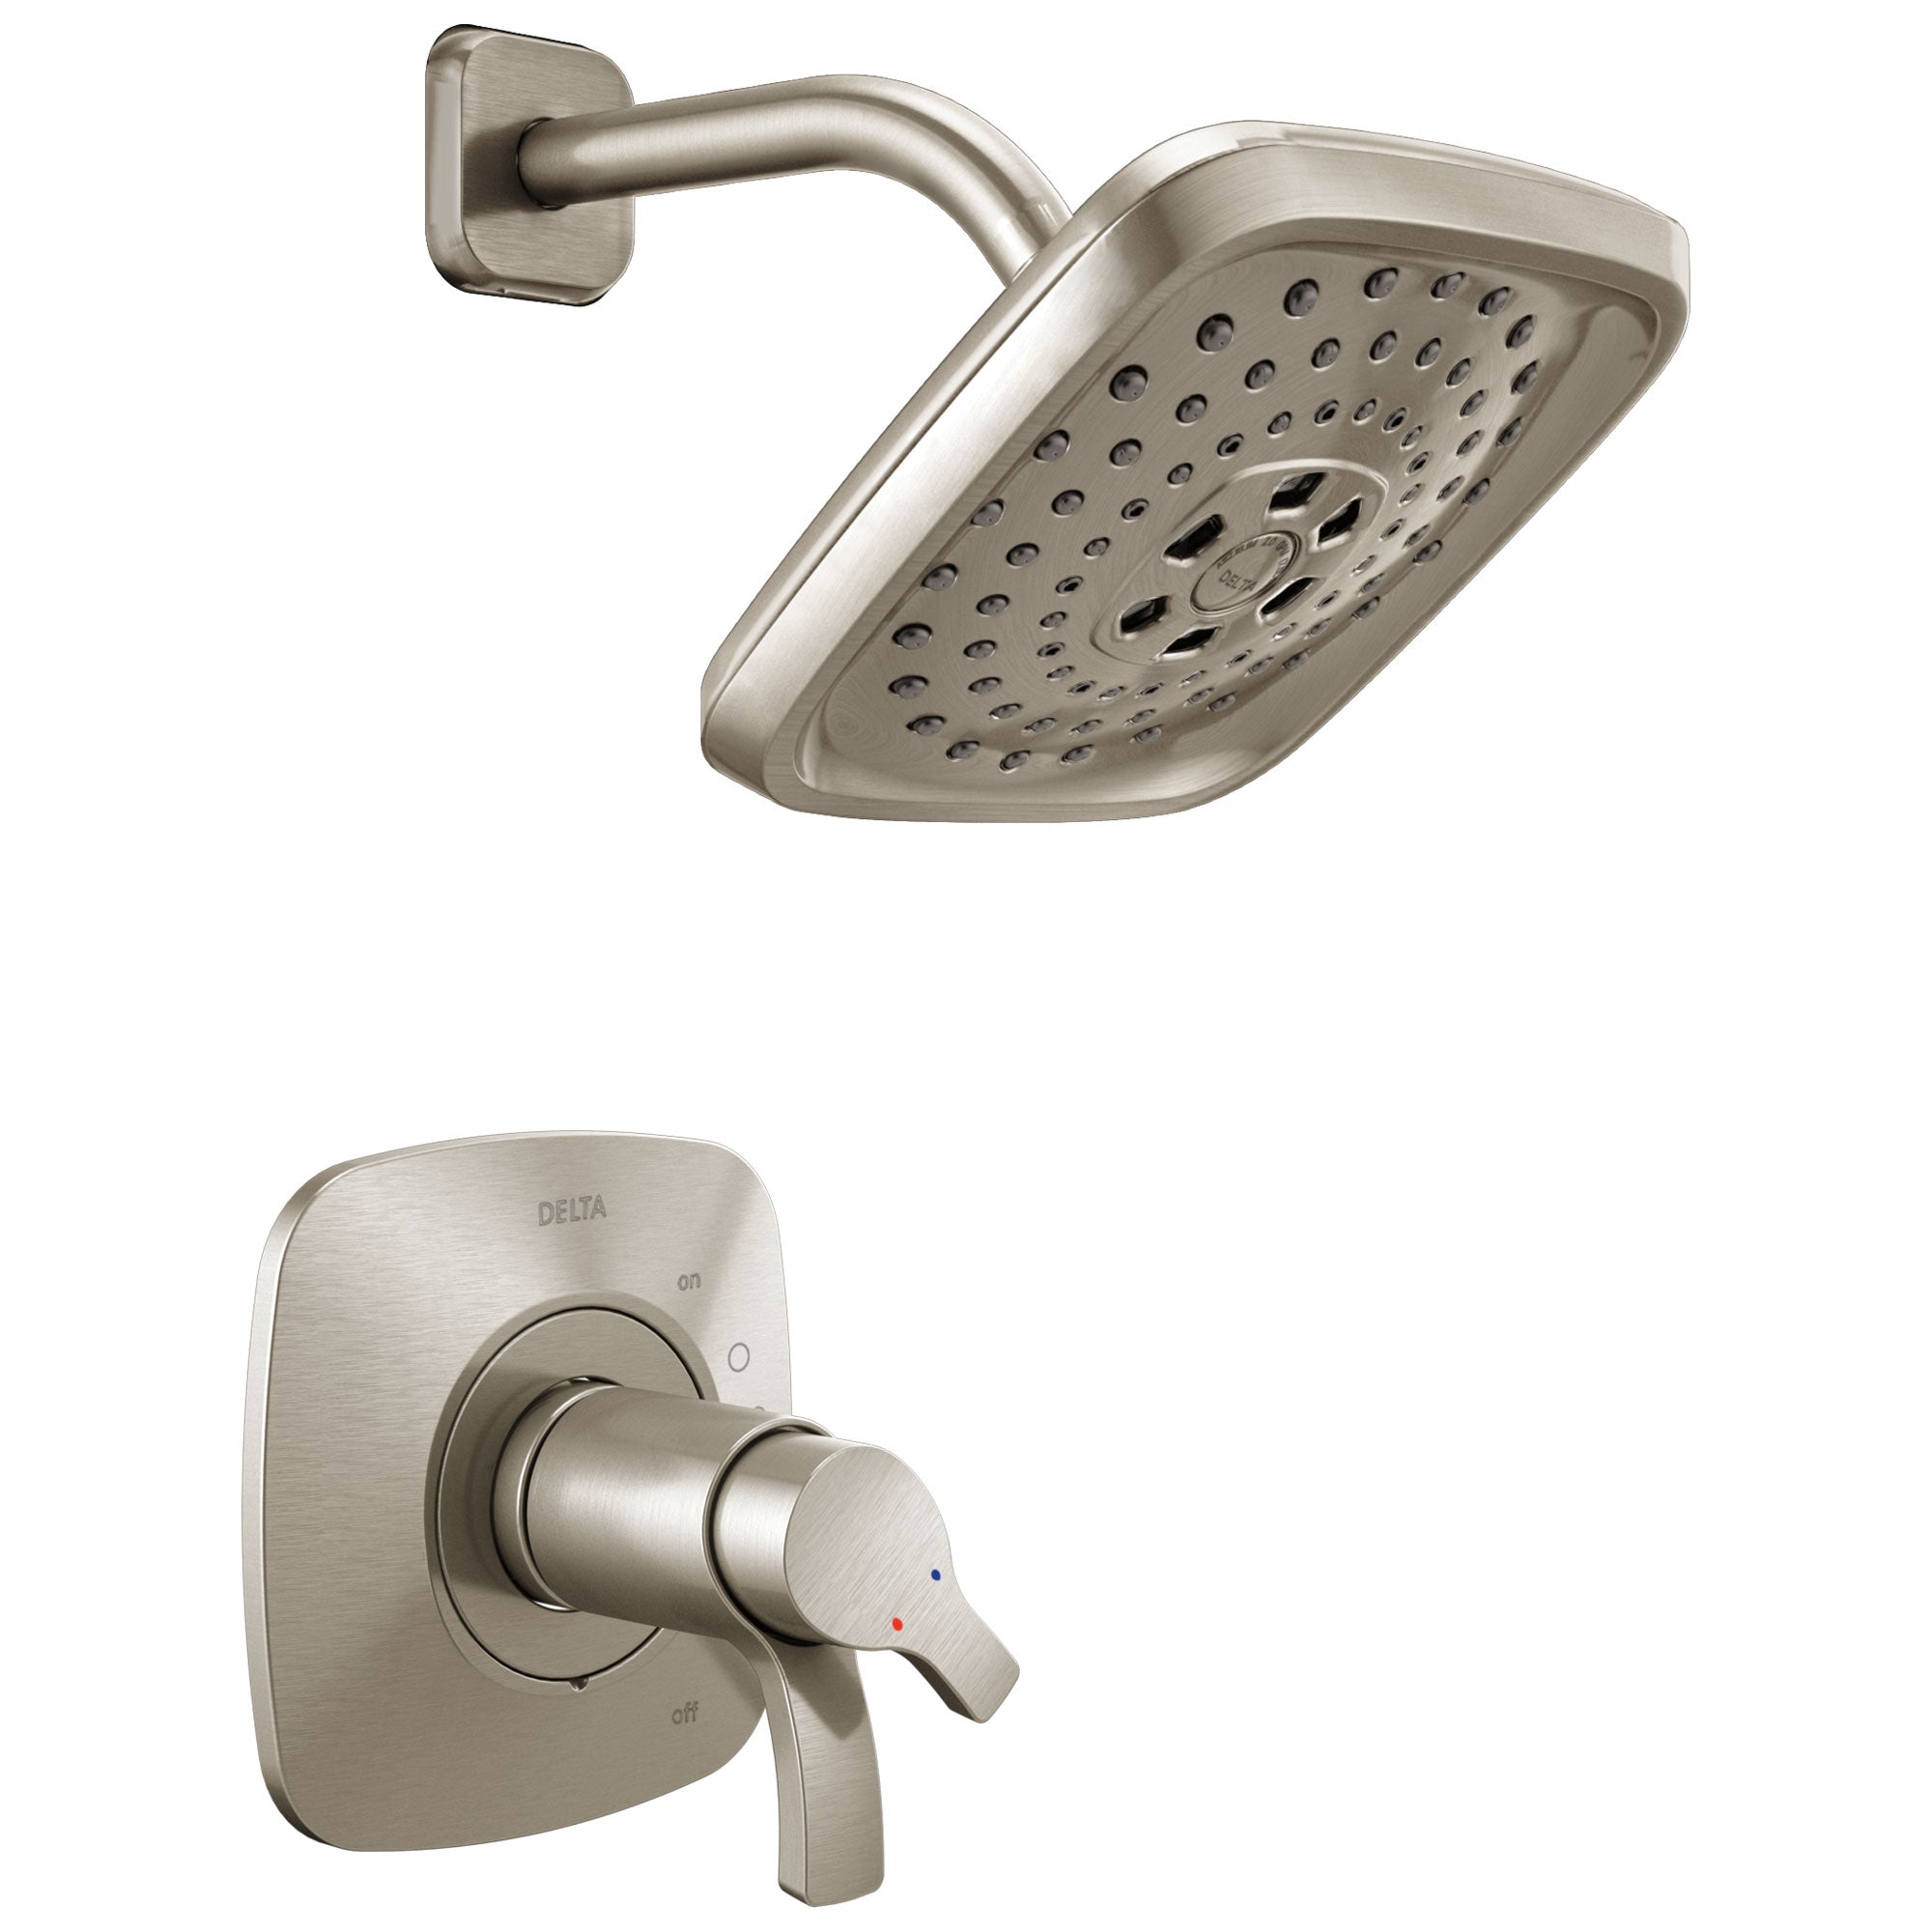 Delta Tesla H2Okinetic 1-Handle Shower Faucet in Stainless Steel Finish Includes Rough-in Valve with Stops D2591V